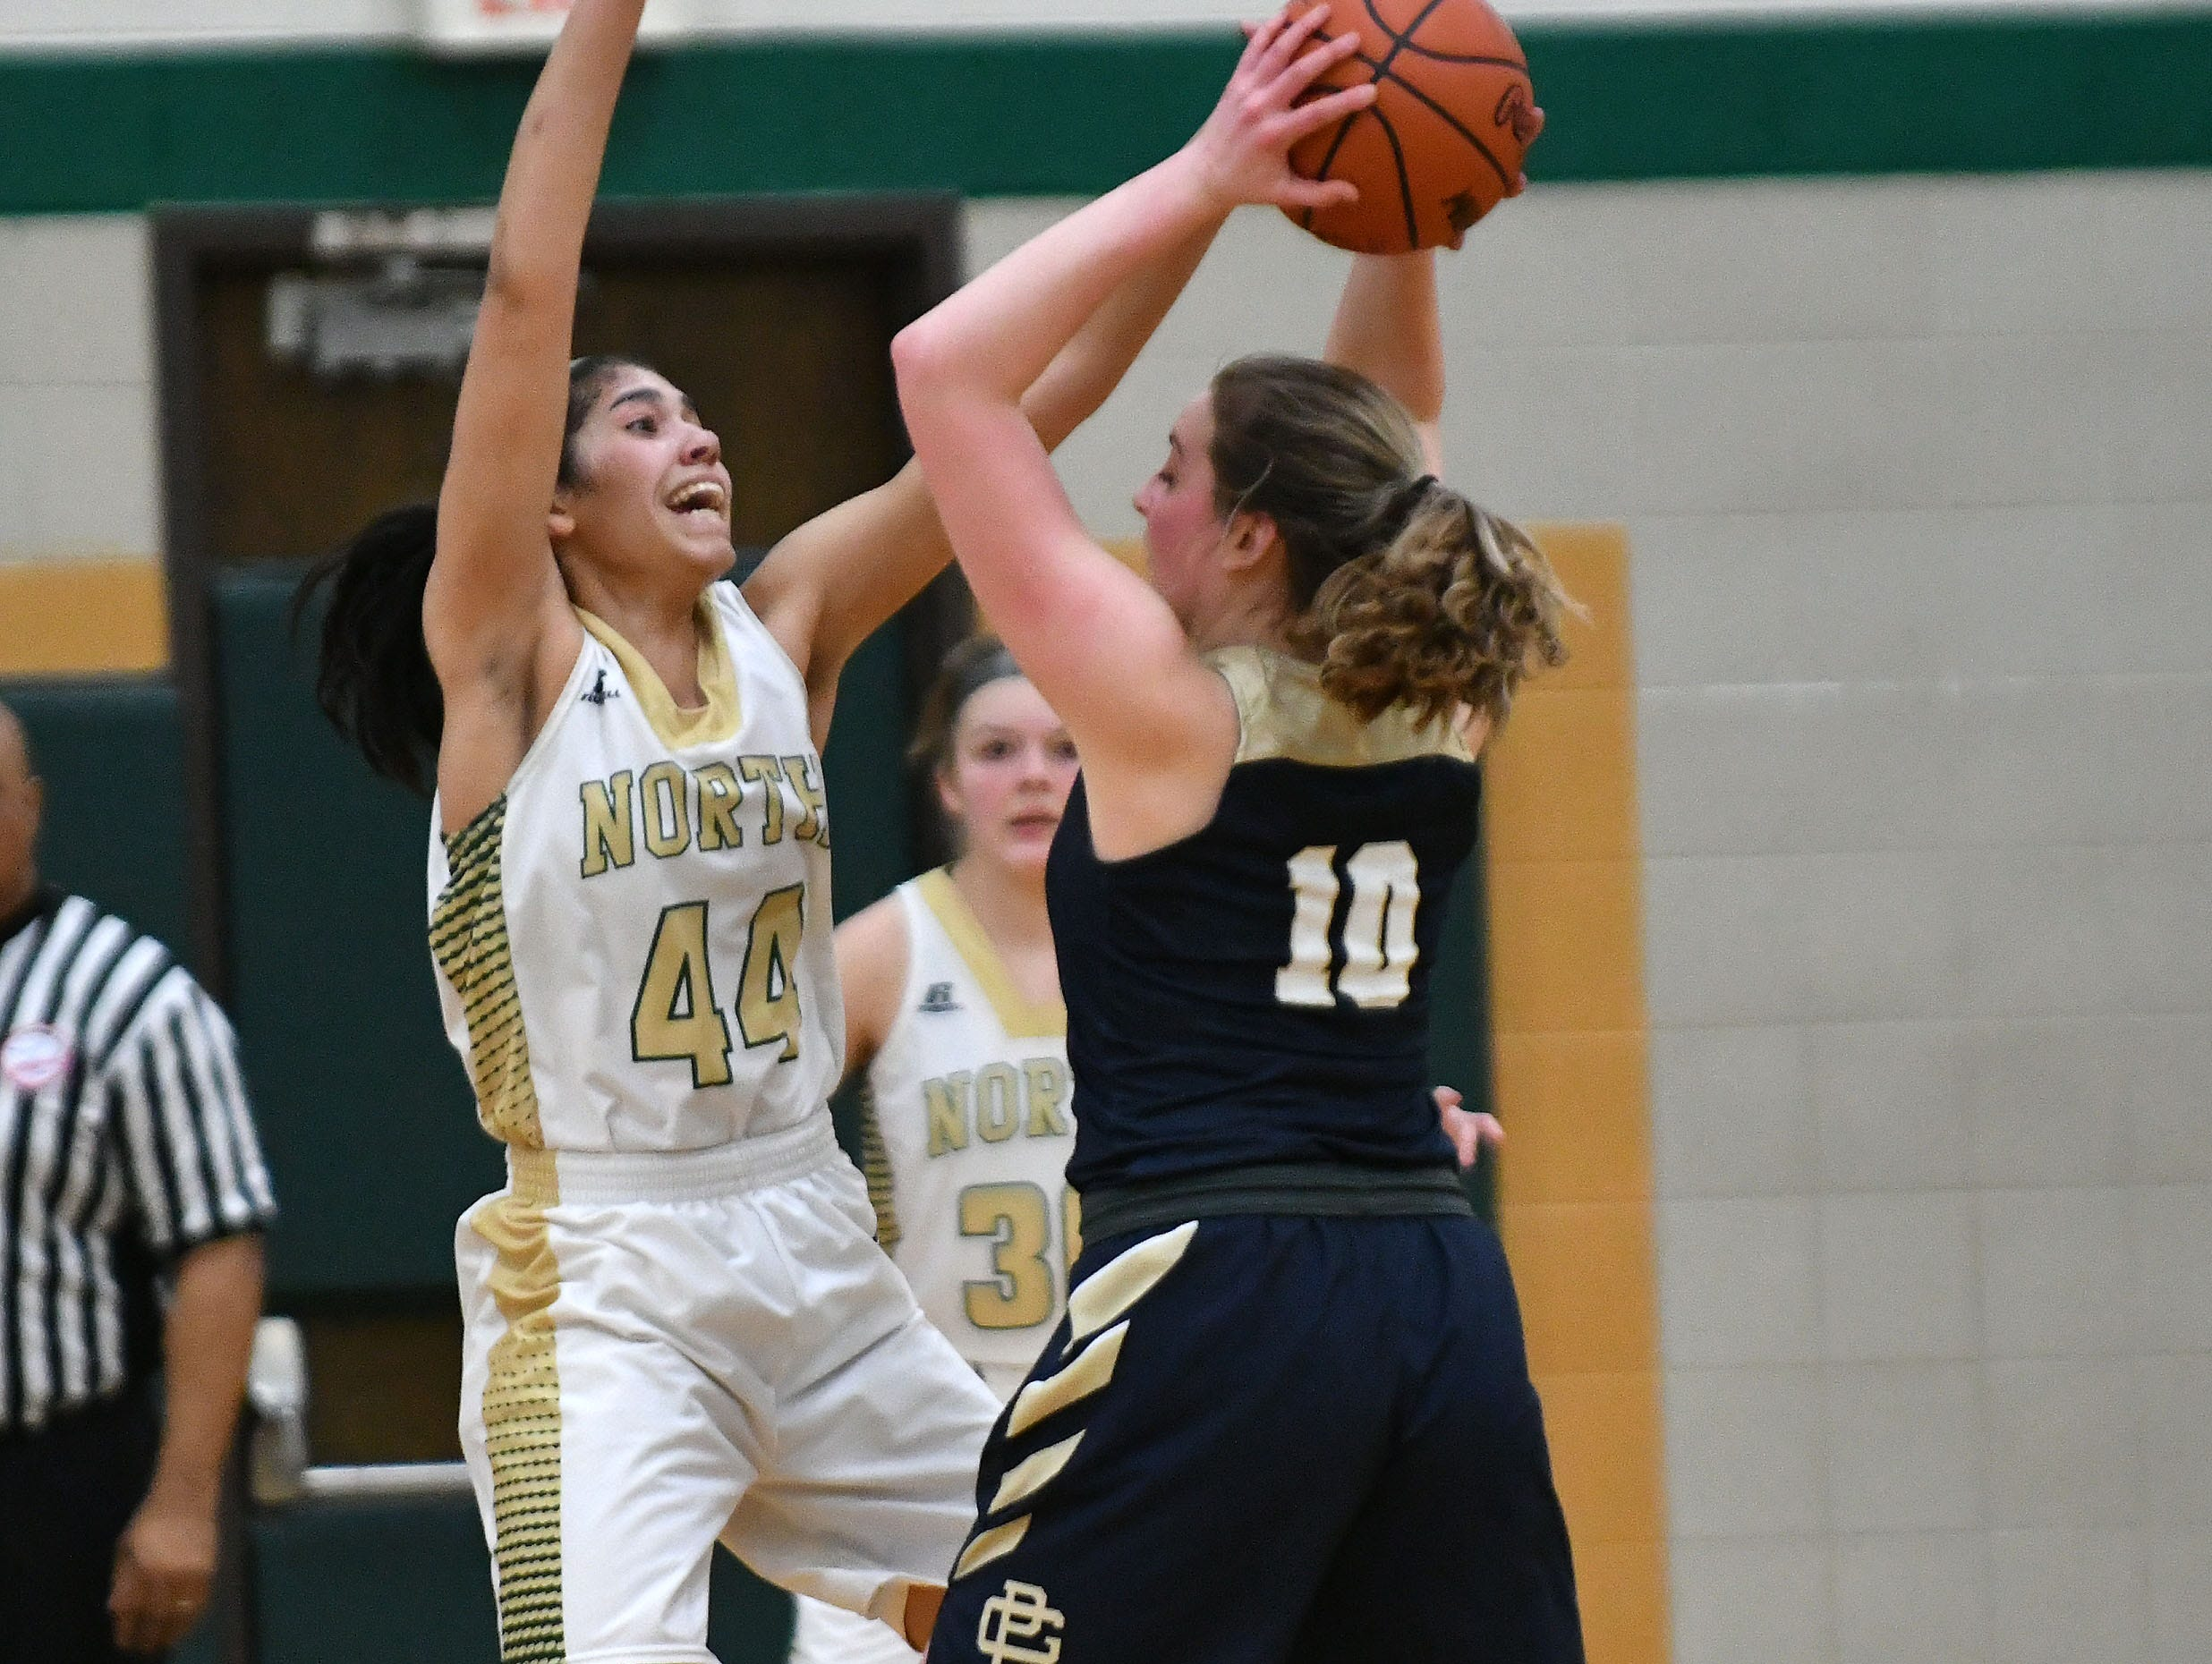 North's Christina Braker plays tight defense against South's Maria Hessburg during the second half. *** Grosse Pointe North cruises to a 42-23 victory over rival Grosse Pointe South in the MHSAA District 26-1 final at Grosse Pointe North High School in Grosse Pointe Woods, Michigan on Friday, March 8, 2019. (John T. Greilick, The Detroit News)